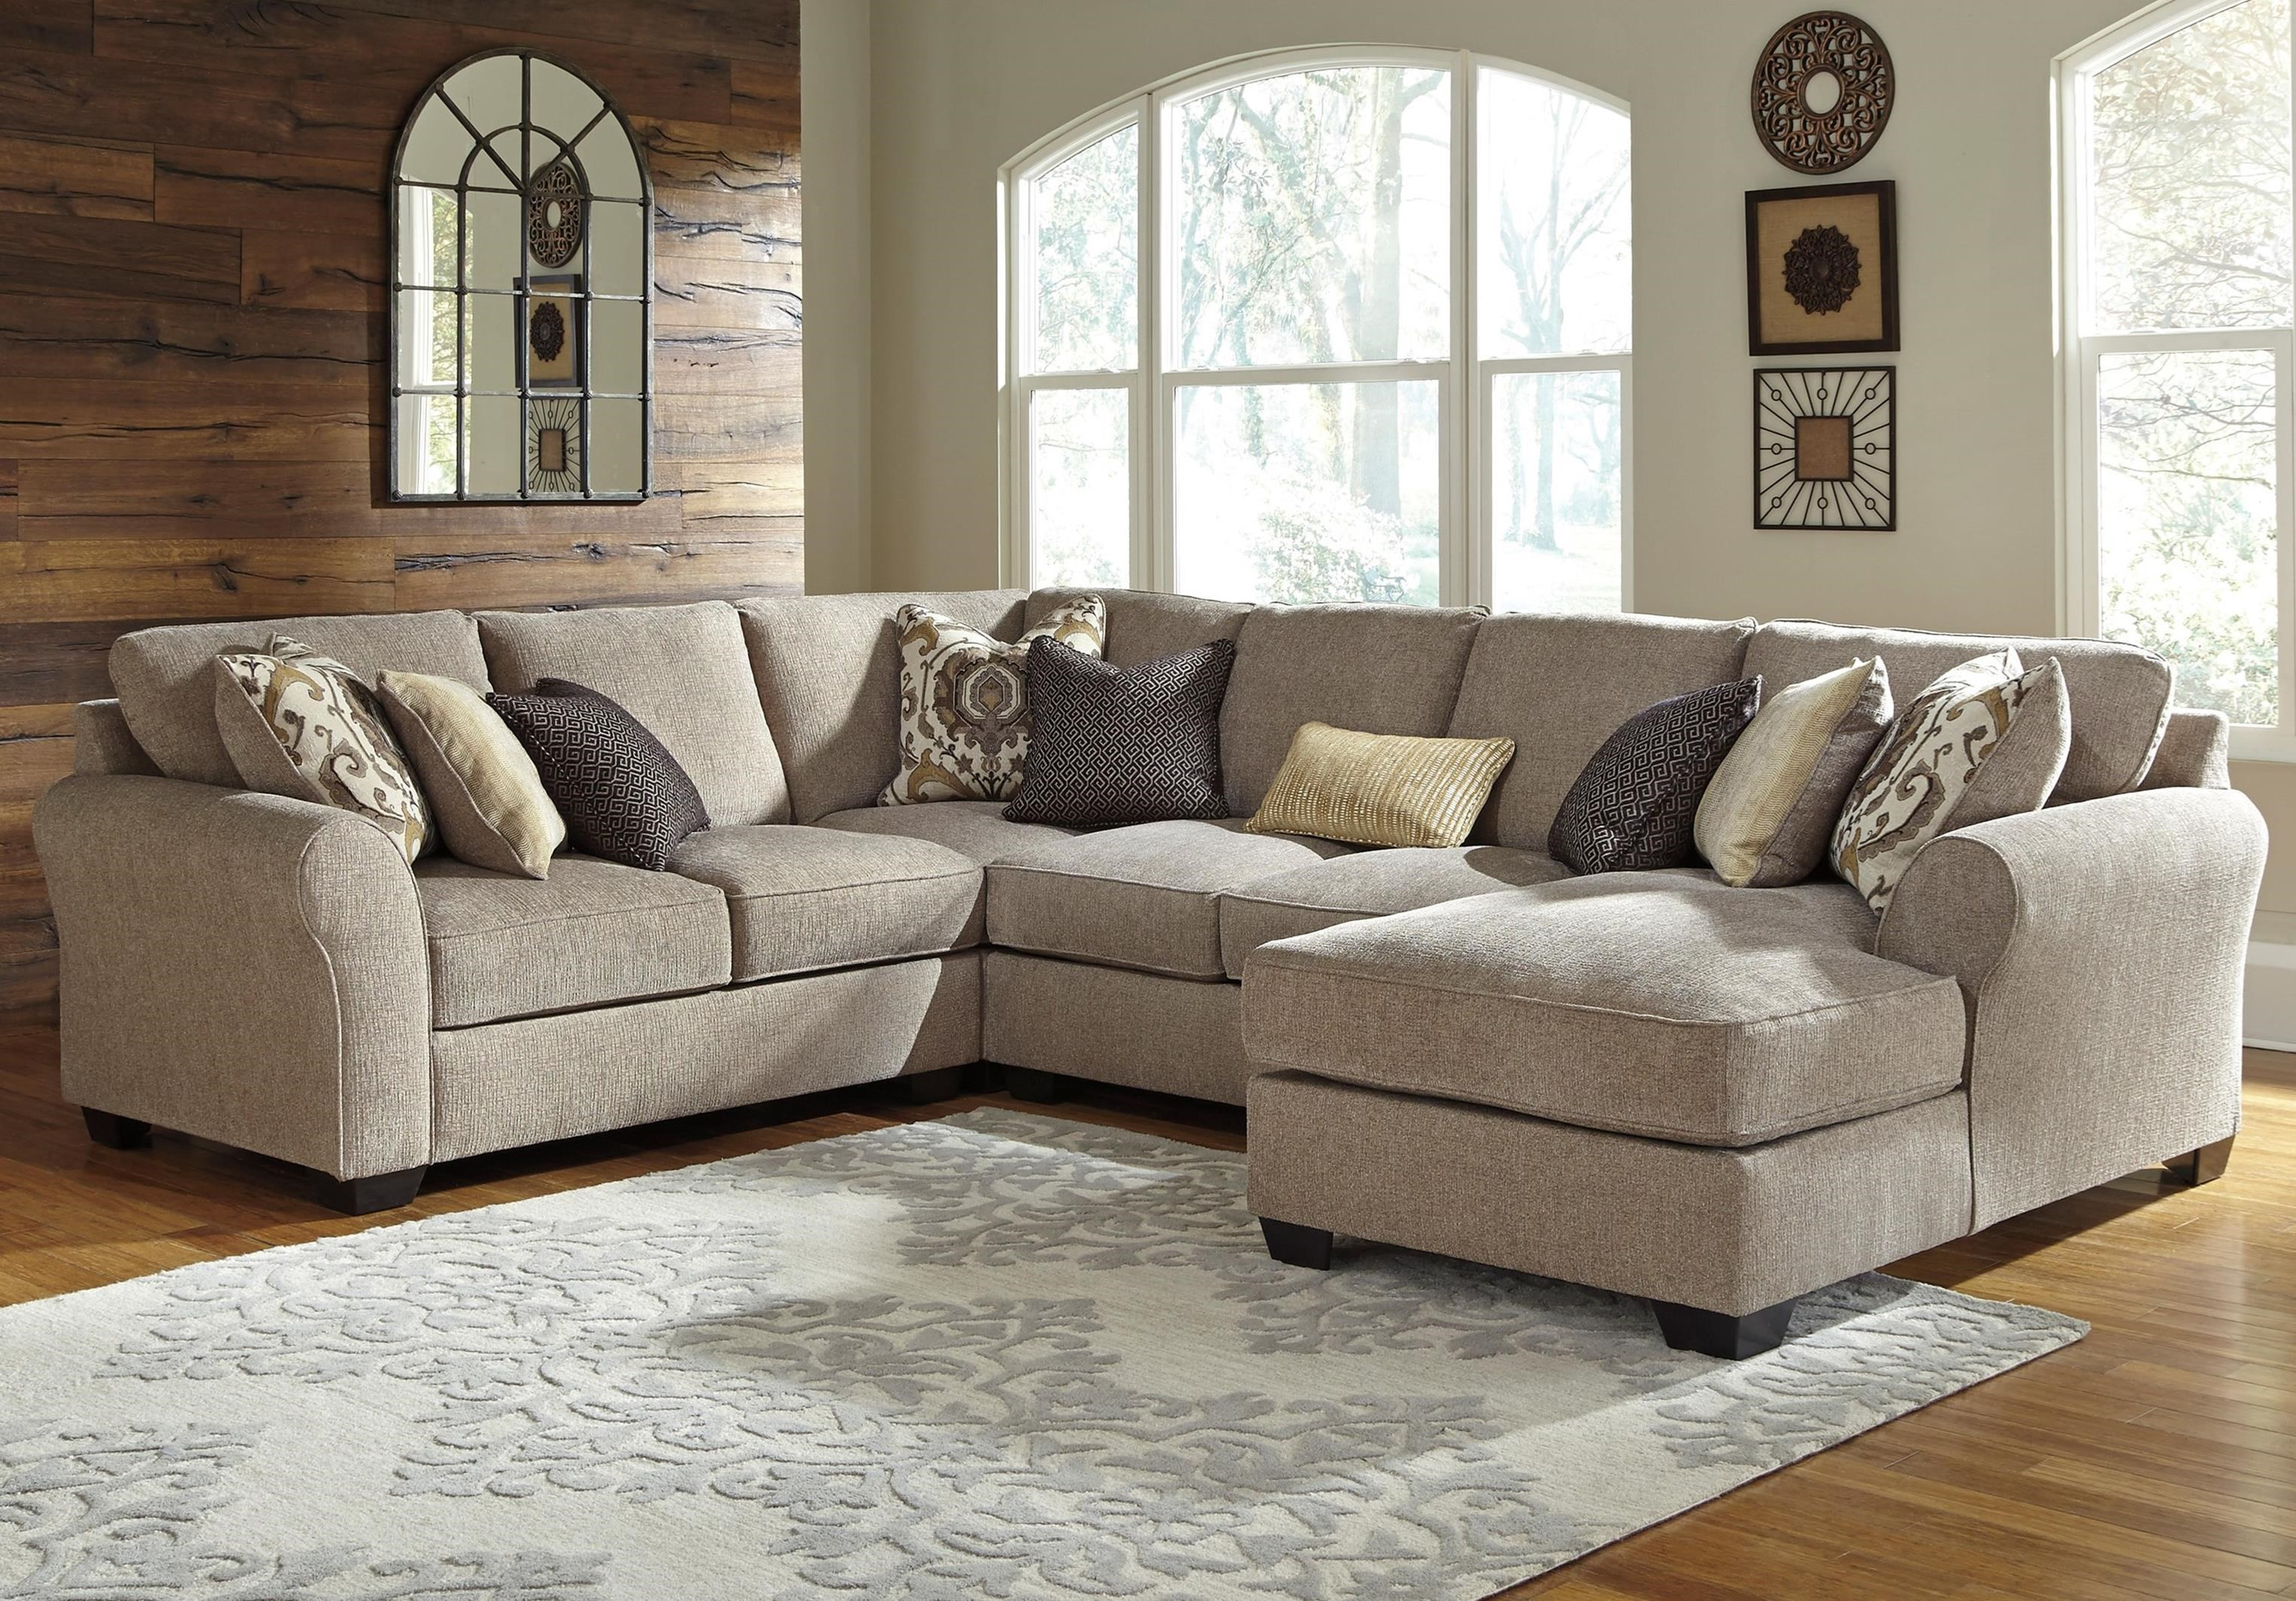 Benchcraft pantomine 4 piece sectional with right chaise for 4 piece recliner sectional sofa